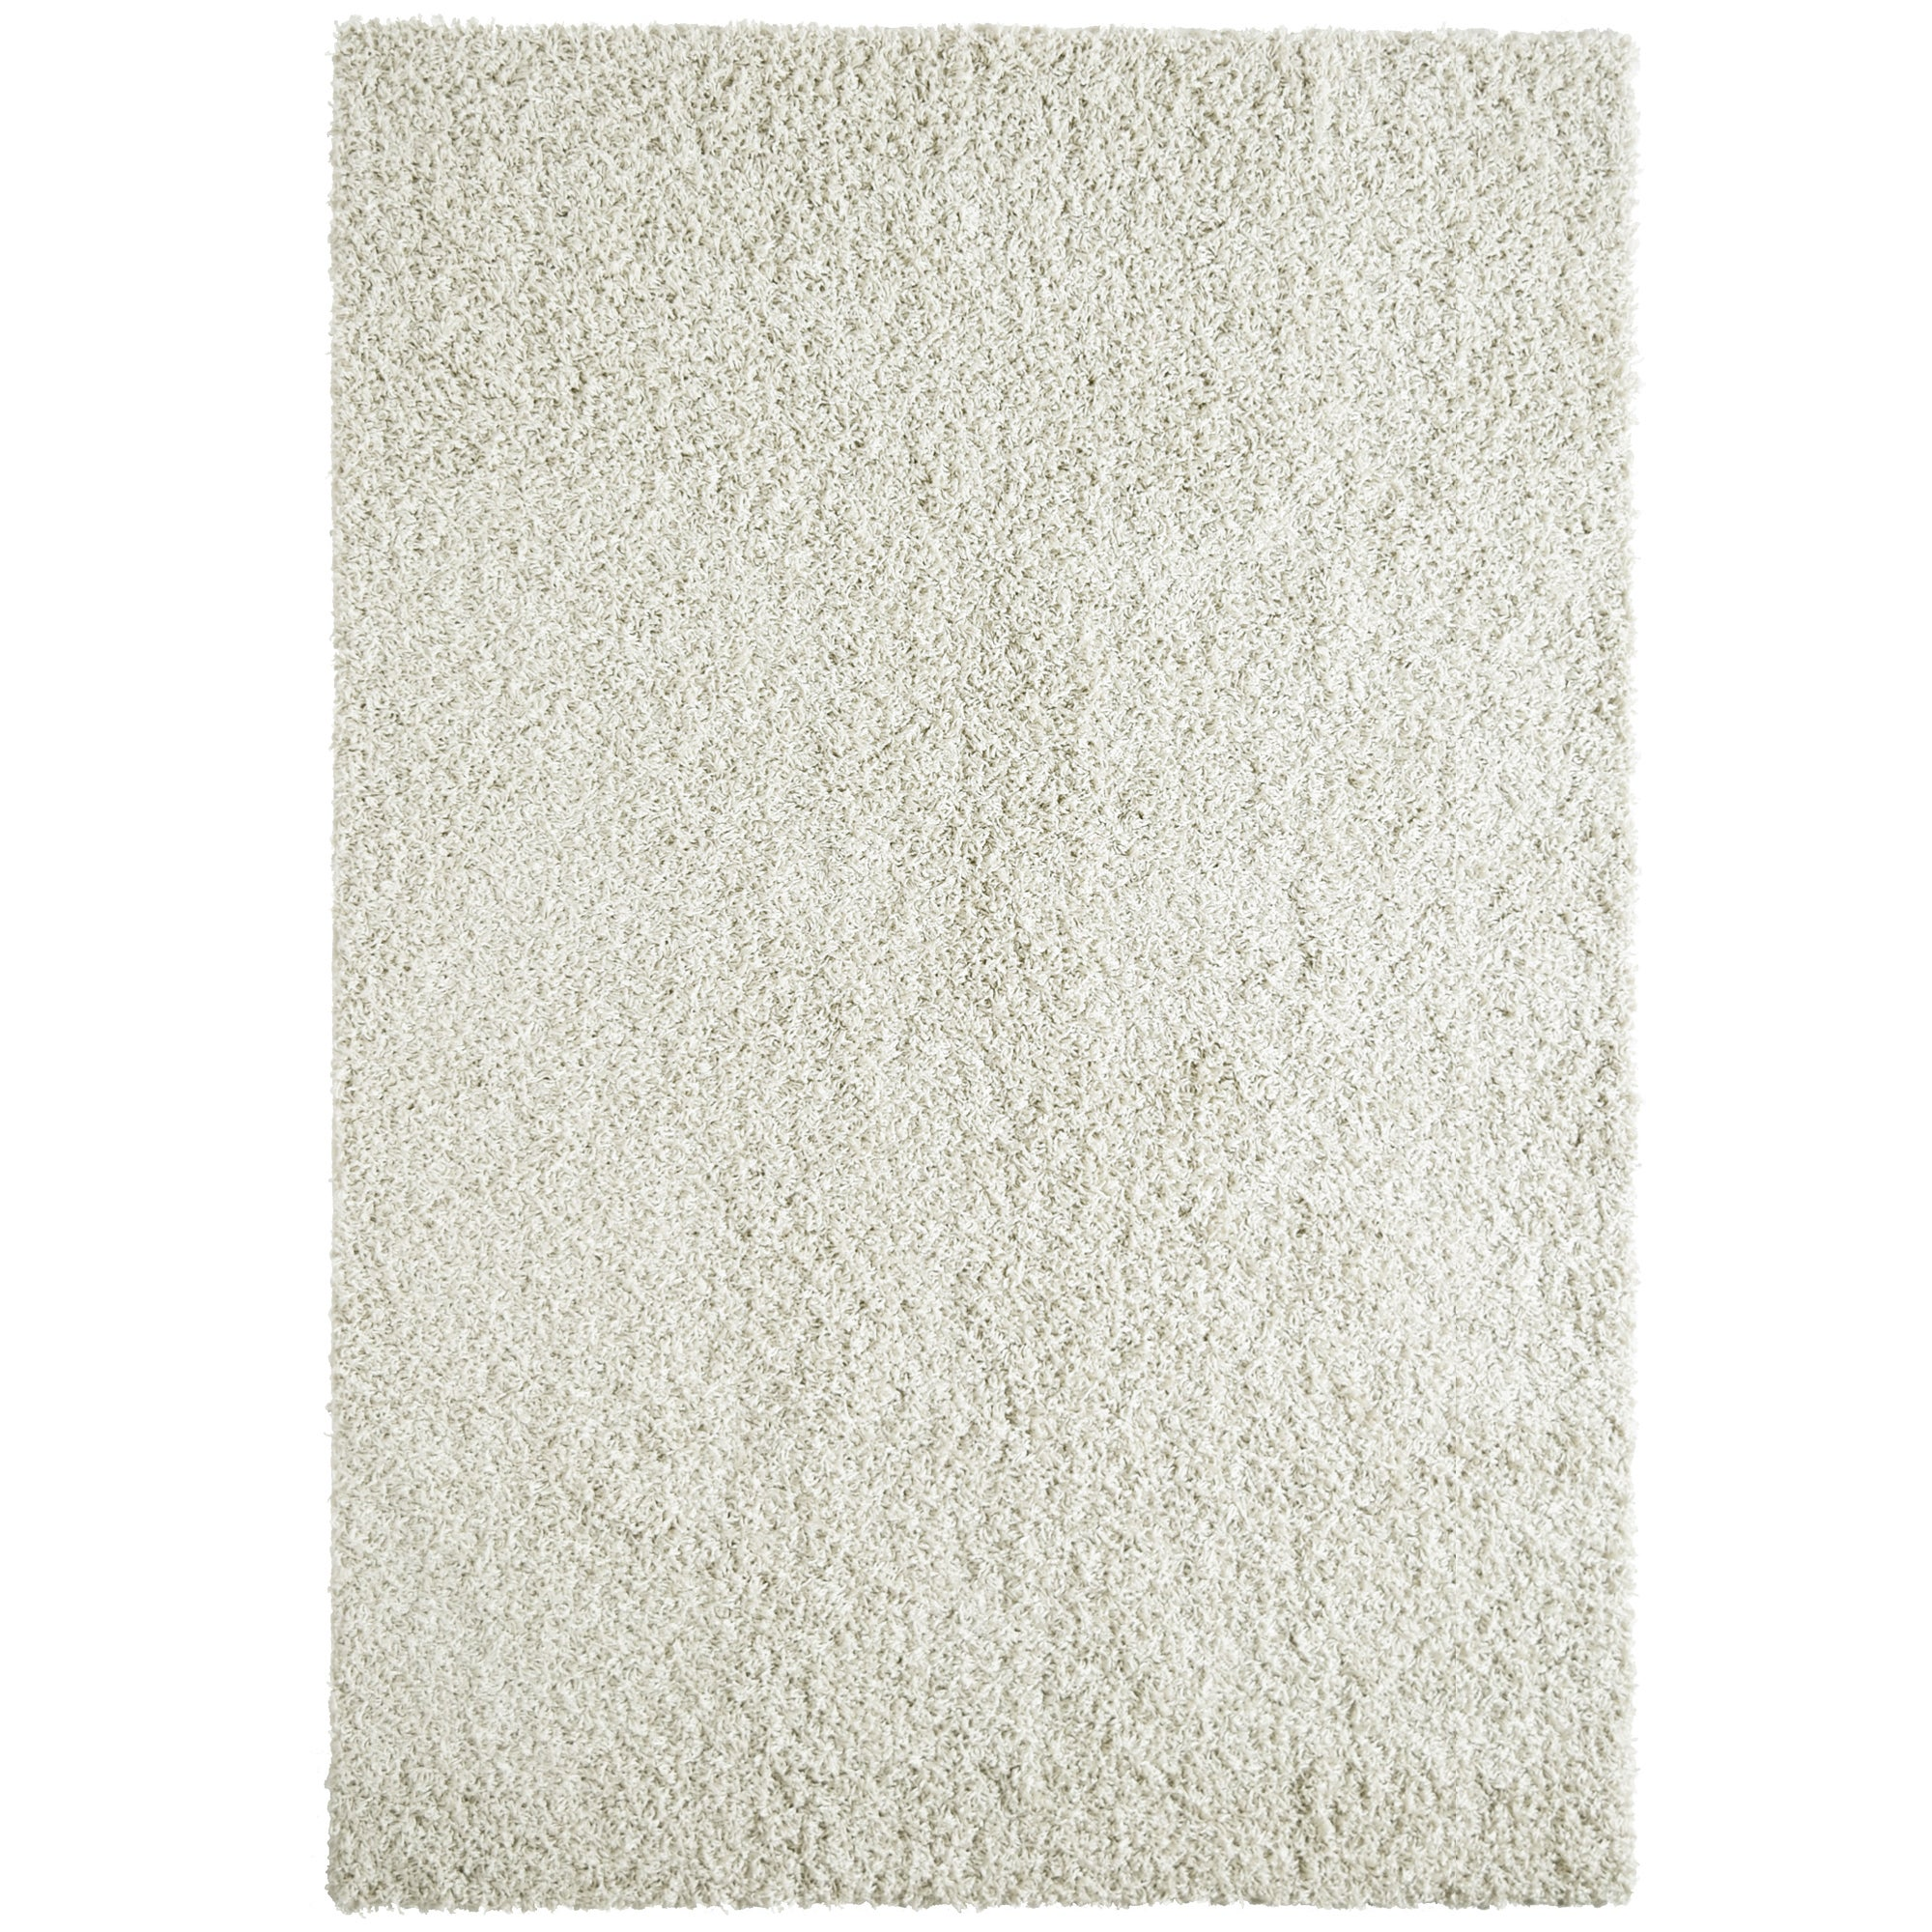 Off White Solid Rugs Area For Less